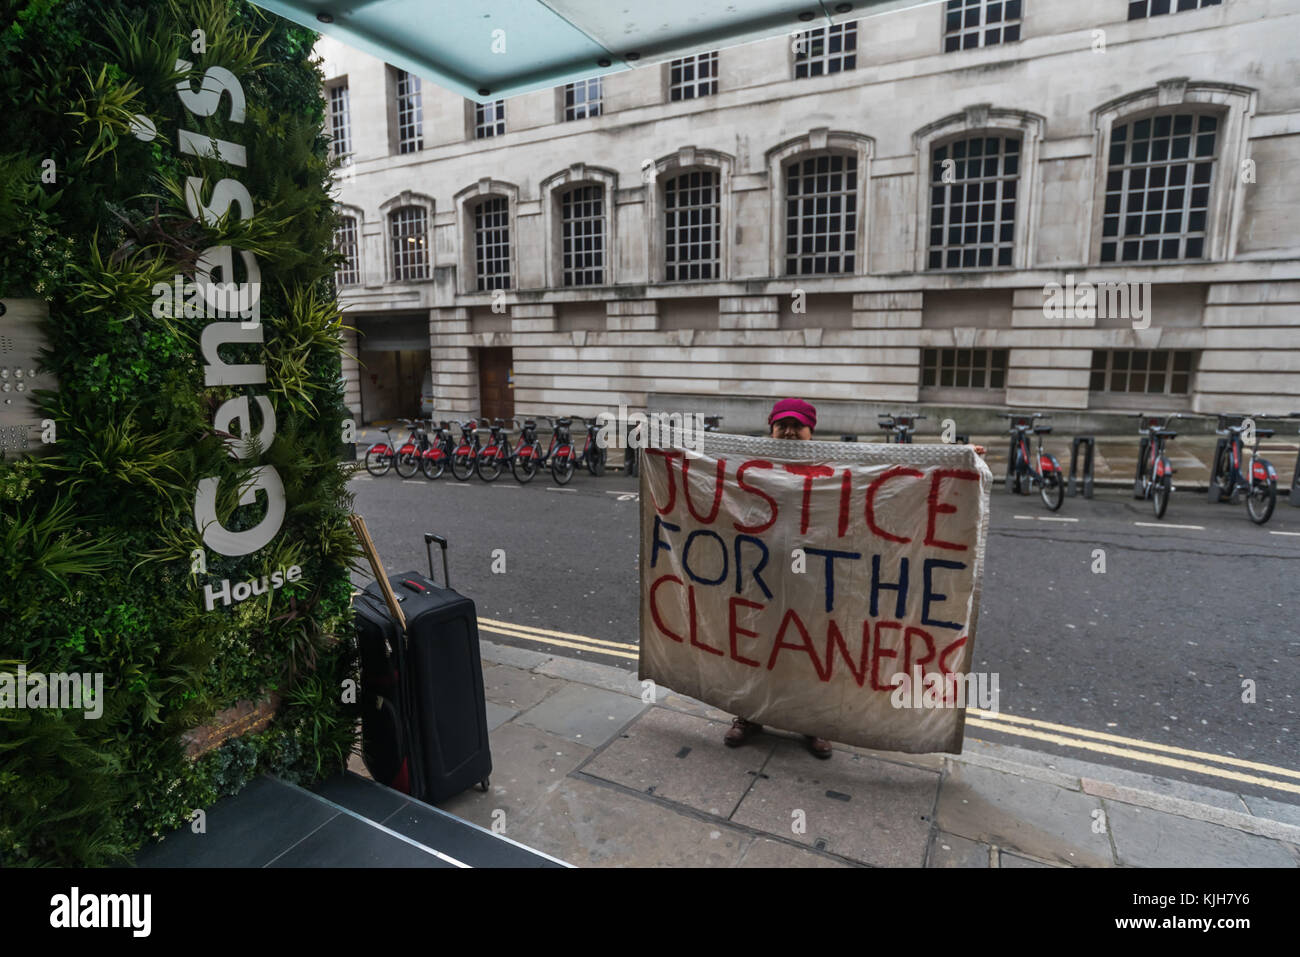 November 24, 2017 - London, UK. 24th November 2017. Victimised cleaner Beatriz Acuna holds a banner 'Justice For the Cleaners outside 138 Fetter Lane, one of the offices where she worked for Regular Cleaning Limited, a family business based in Lewisham., The Cleaners and Allied Independent Workers Union (CAIWU) was protesting on her behalf as she has been sacked by Regular without cause because of her trade union activities as a rep at One Finsbury Circus where she had worked for three years. The protesters at Fetter Lane were told there was nobody on site from either the management company. Stock Photo